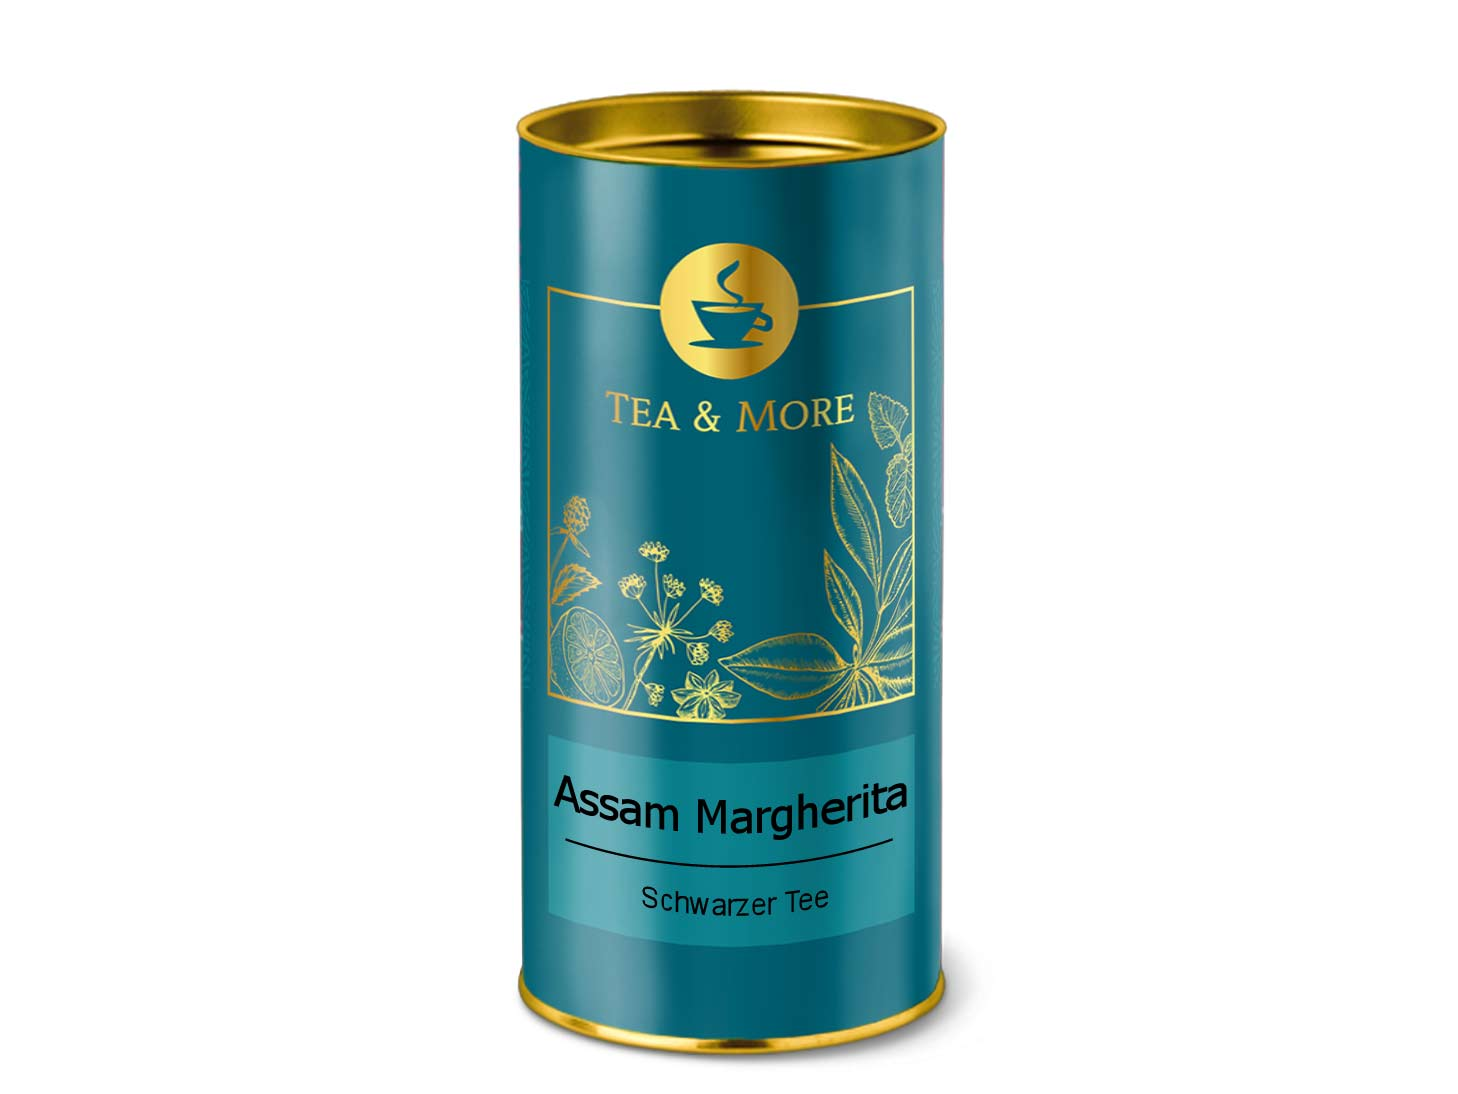 Assam Margherita - Goldspitzentee